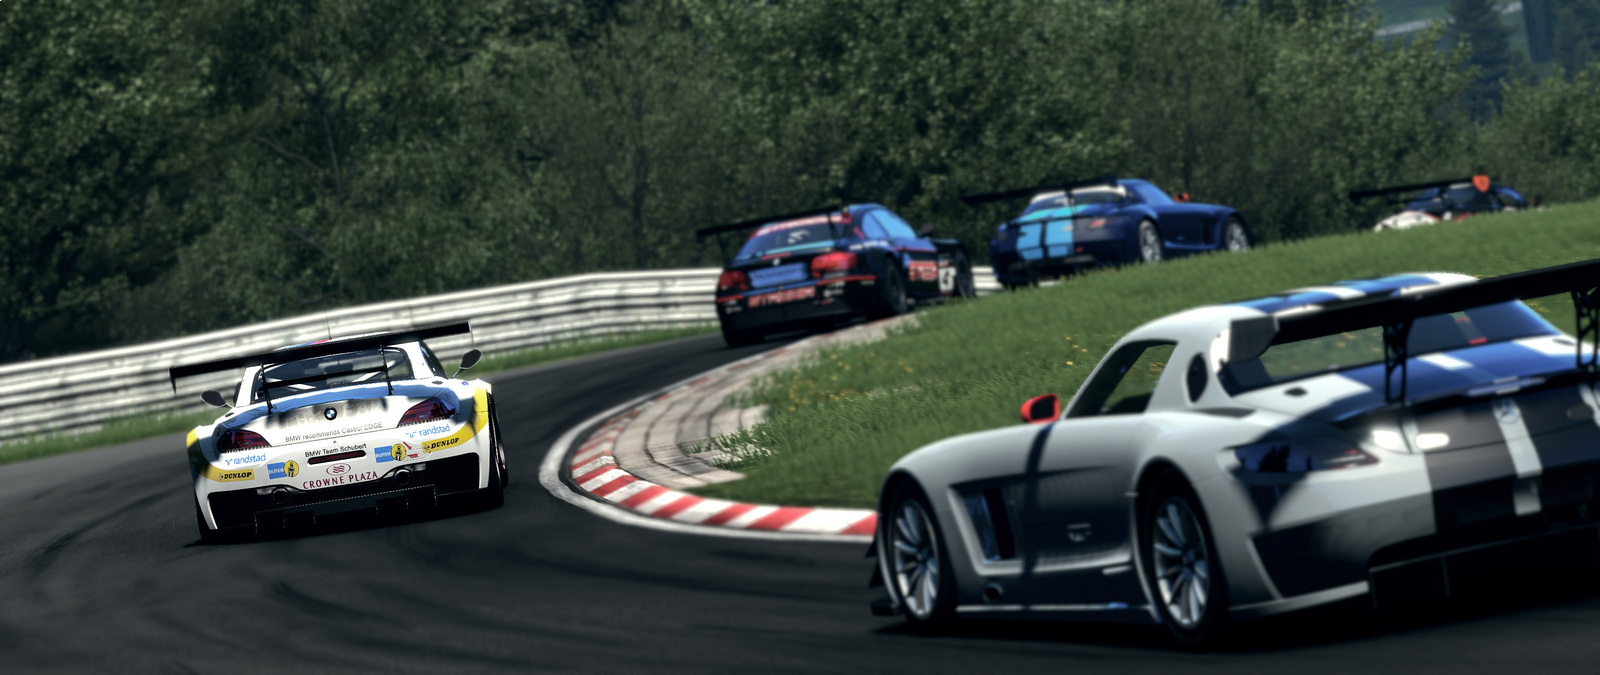 project cars muestra su potencia en ps4 y xbox one cdm news. Black Bedroom Furniture Sets. Home Design Ideas